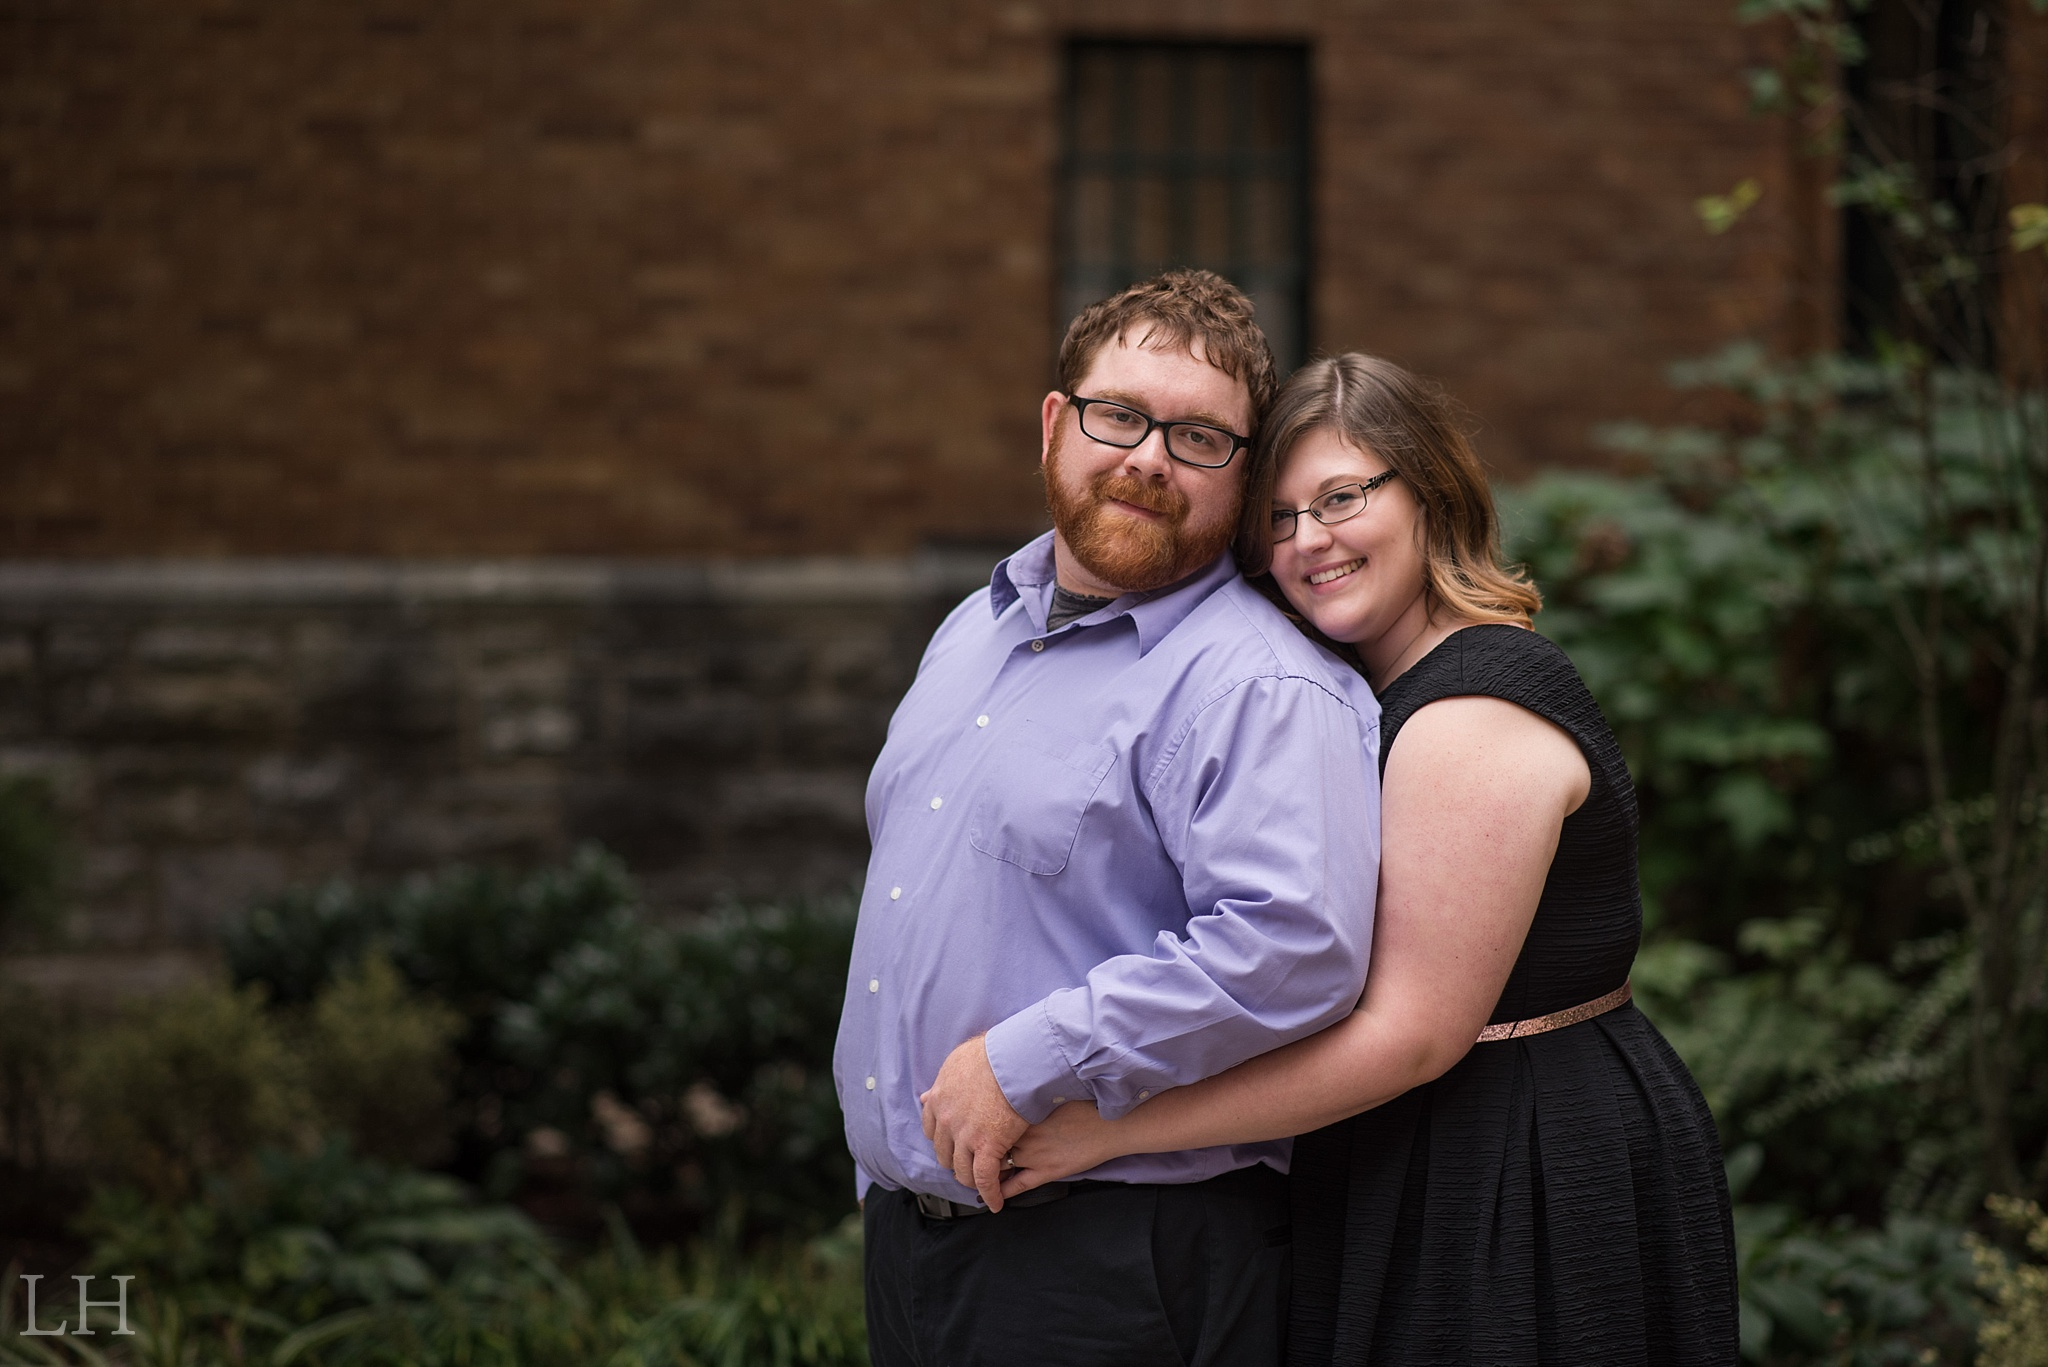 EmilyDustinEngaged_140_Blog.jpg